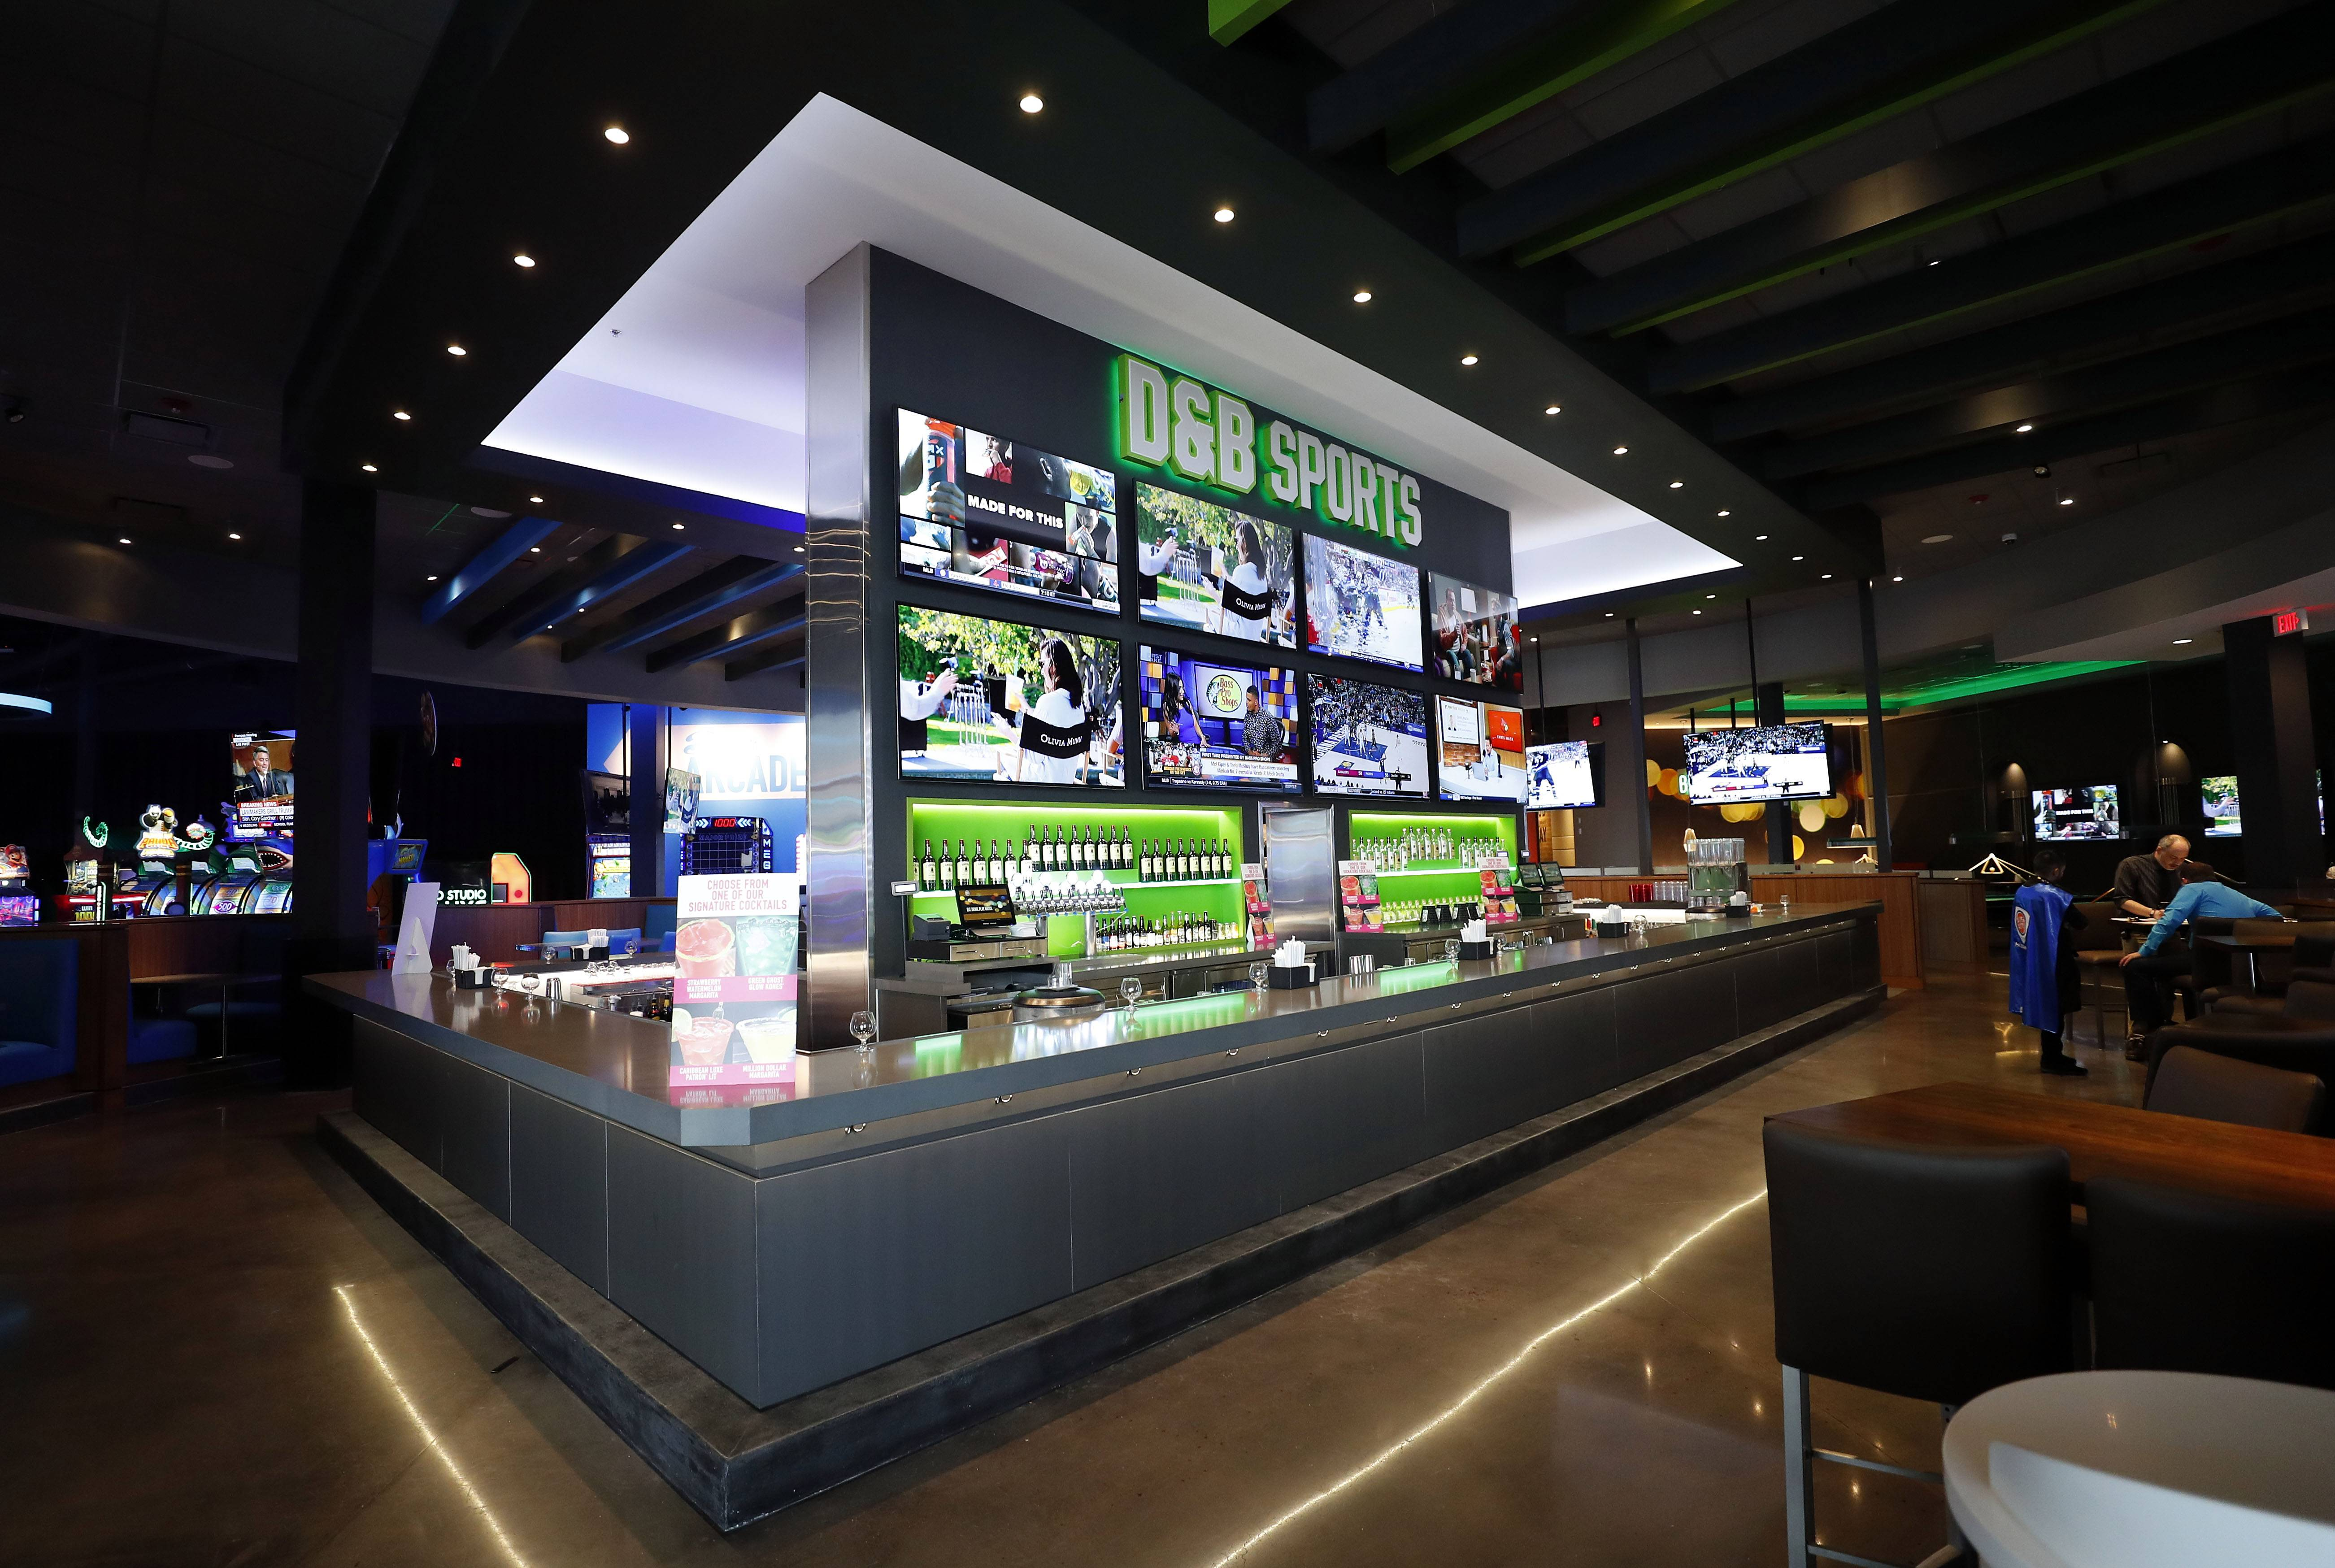 The sports bar at the new Dave & Buster's location in Rosemont features about 30 TVs. The bar has the major sports packages and will also show pay-per-view events.